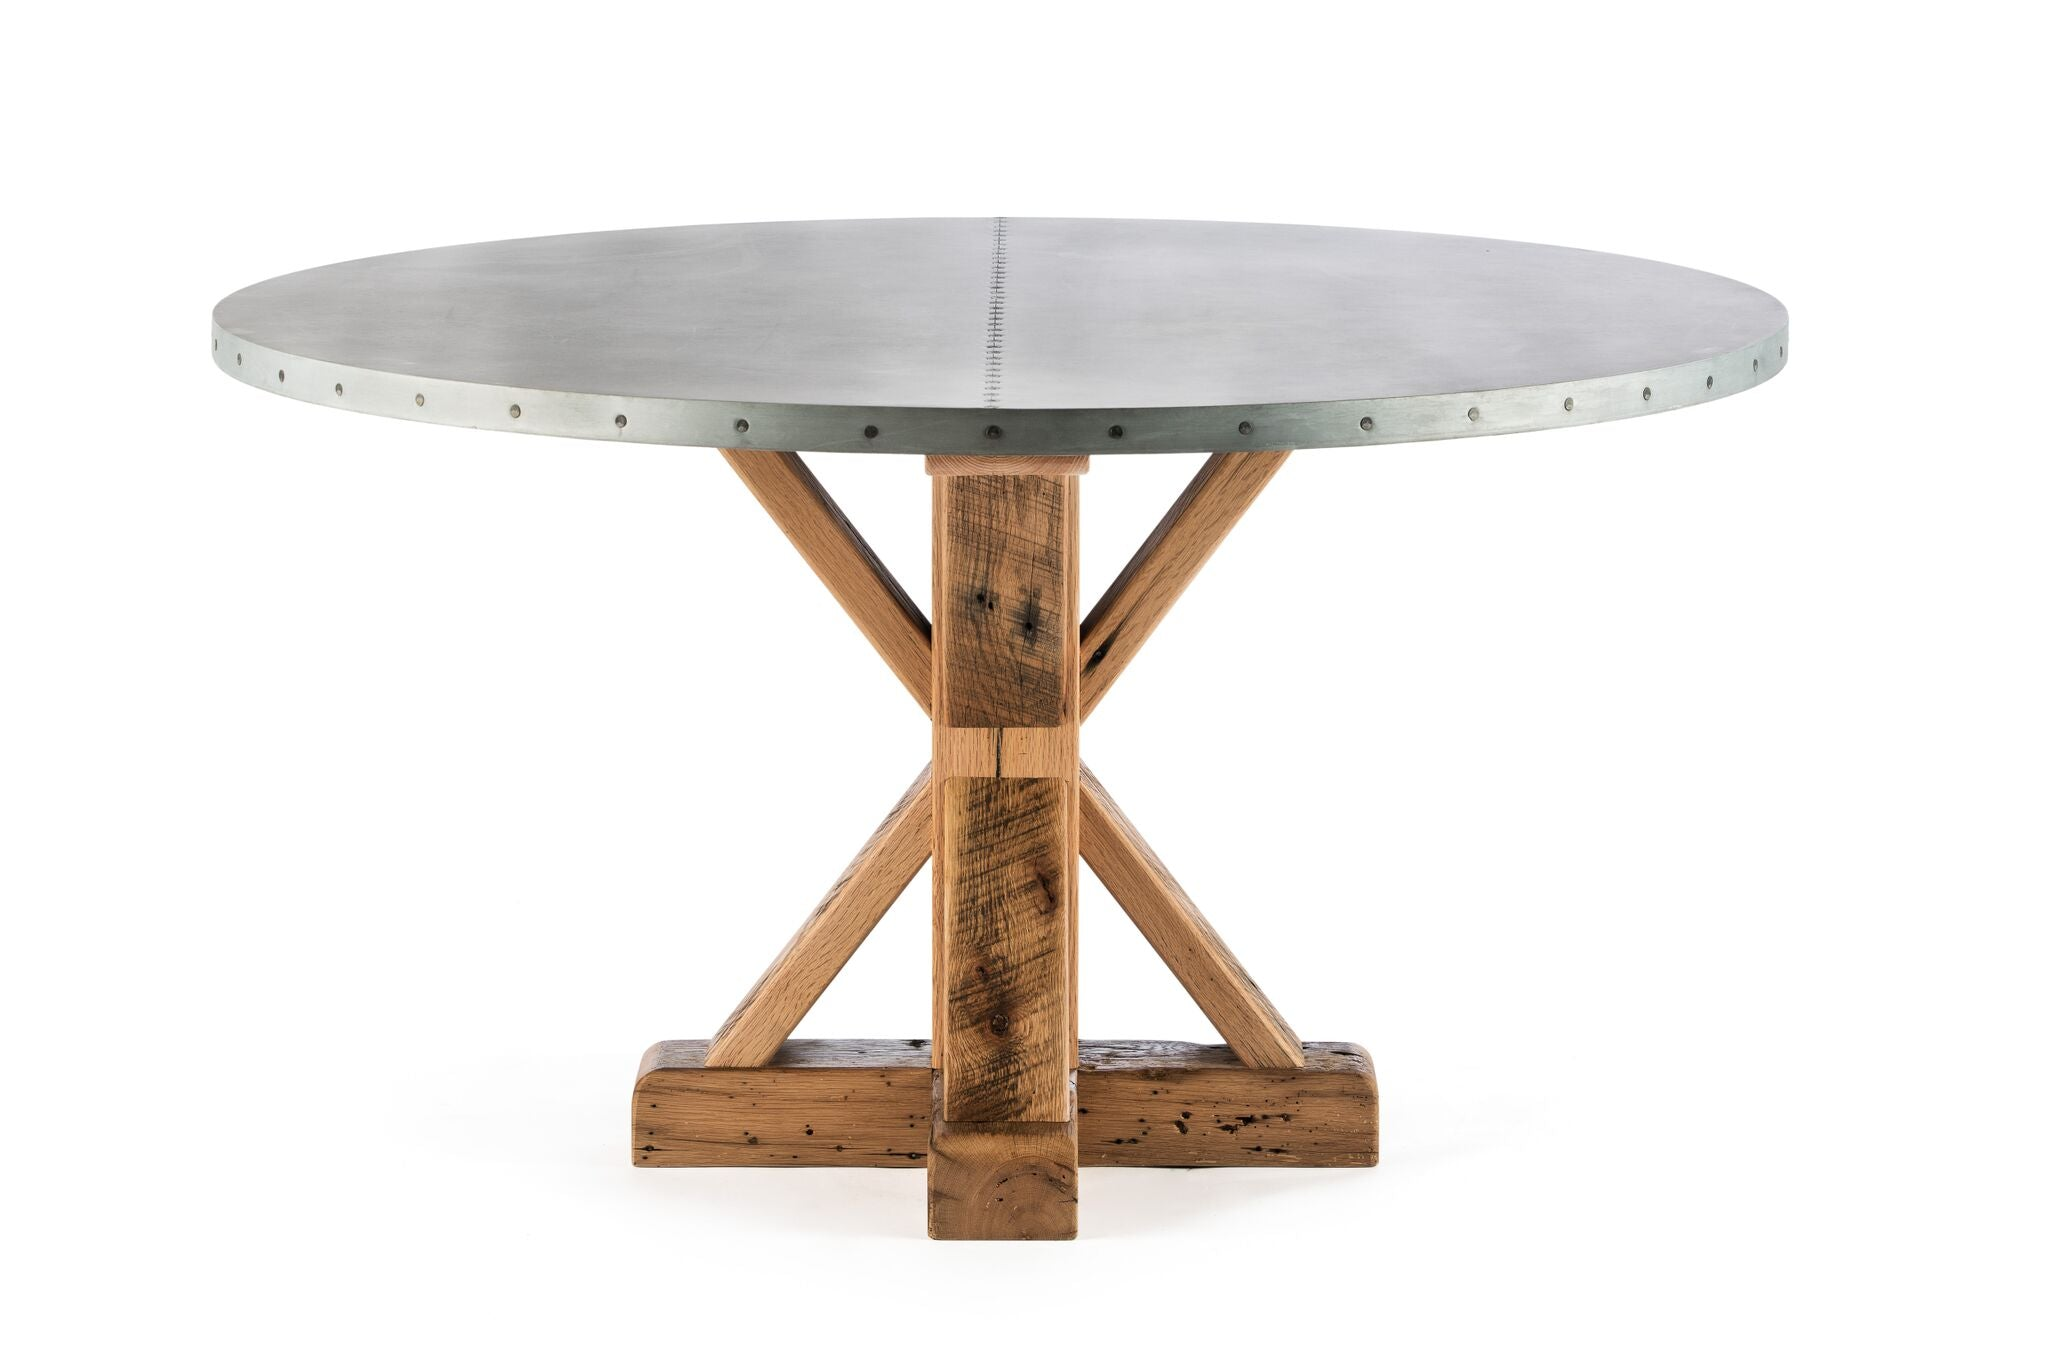 Zinc Round Tables | French Trestle Table | CLASSIC | Natural Ash | 48"